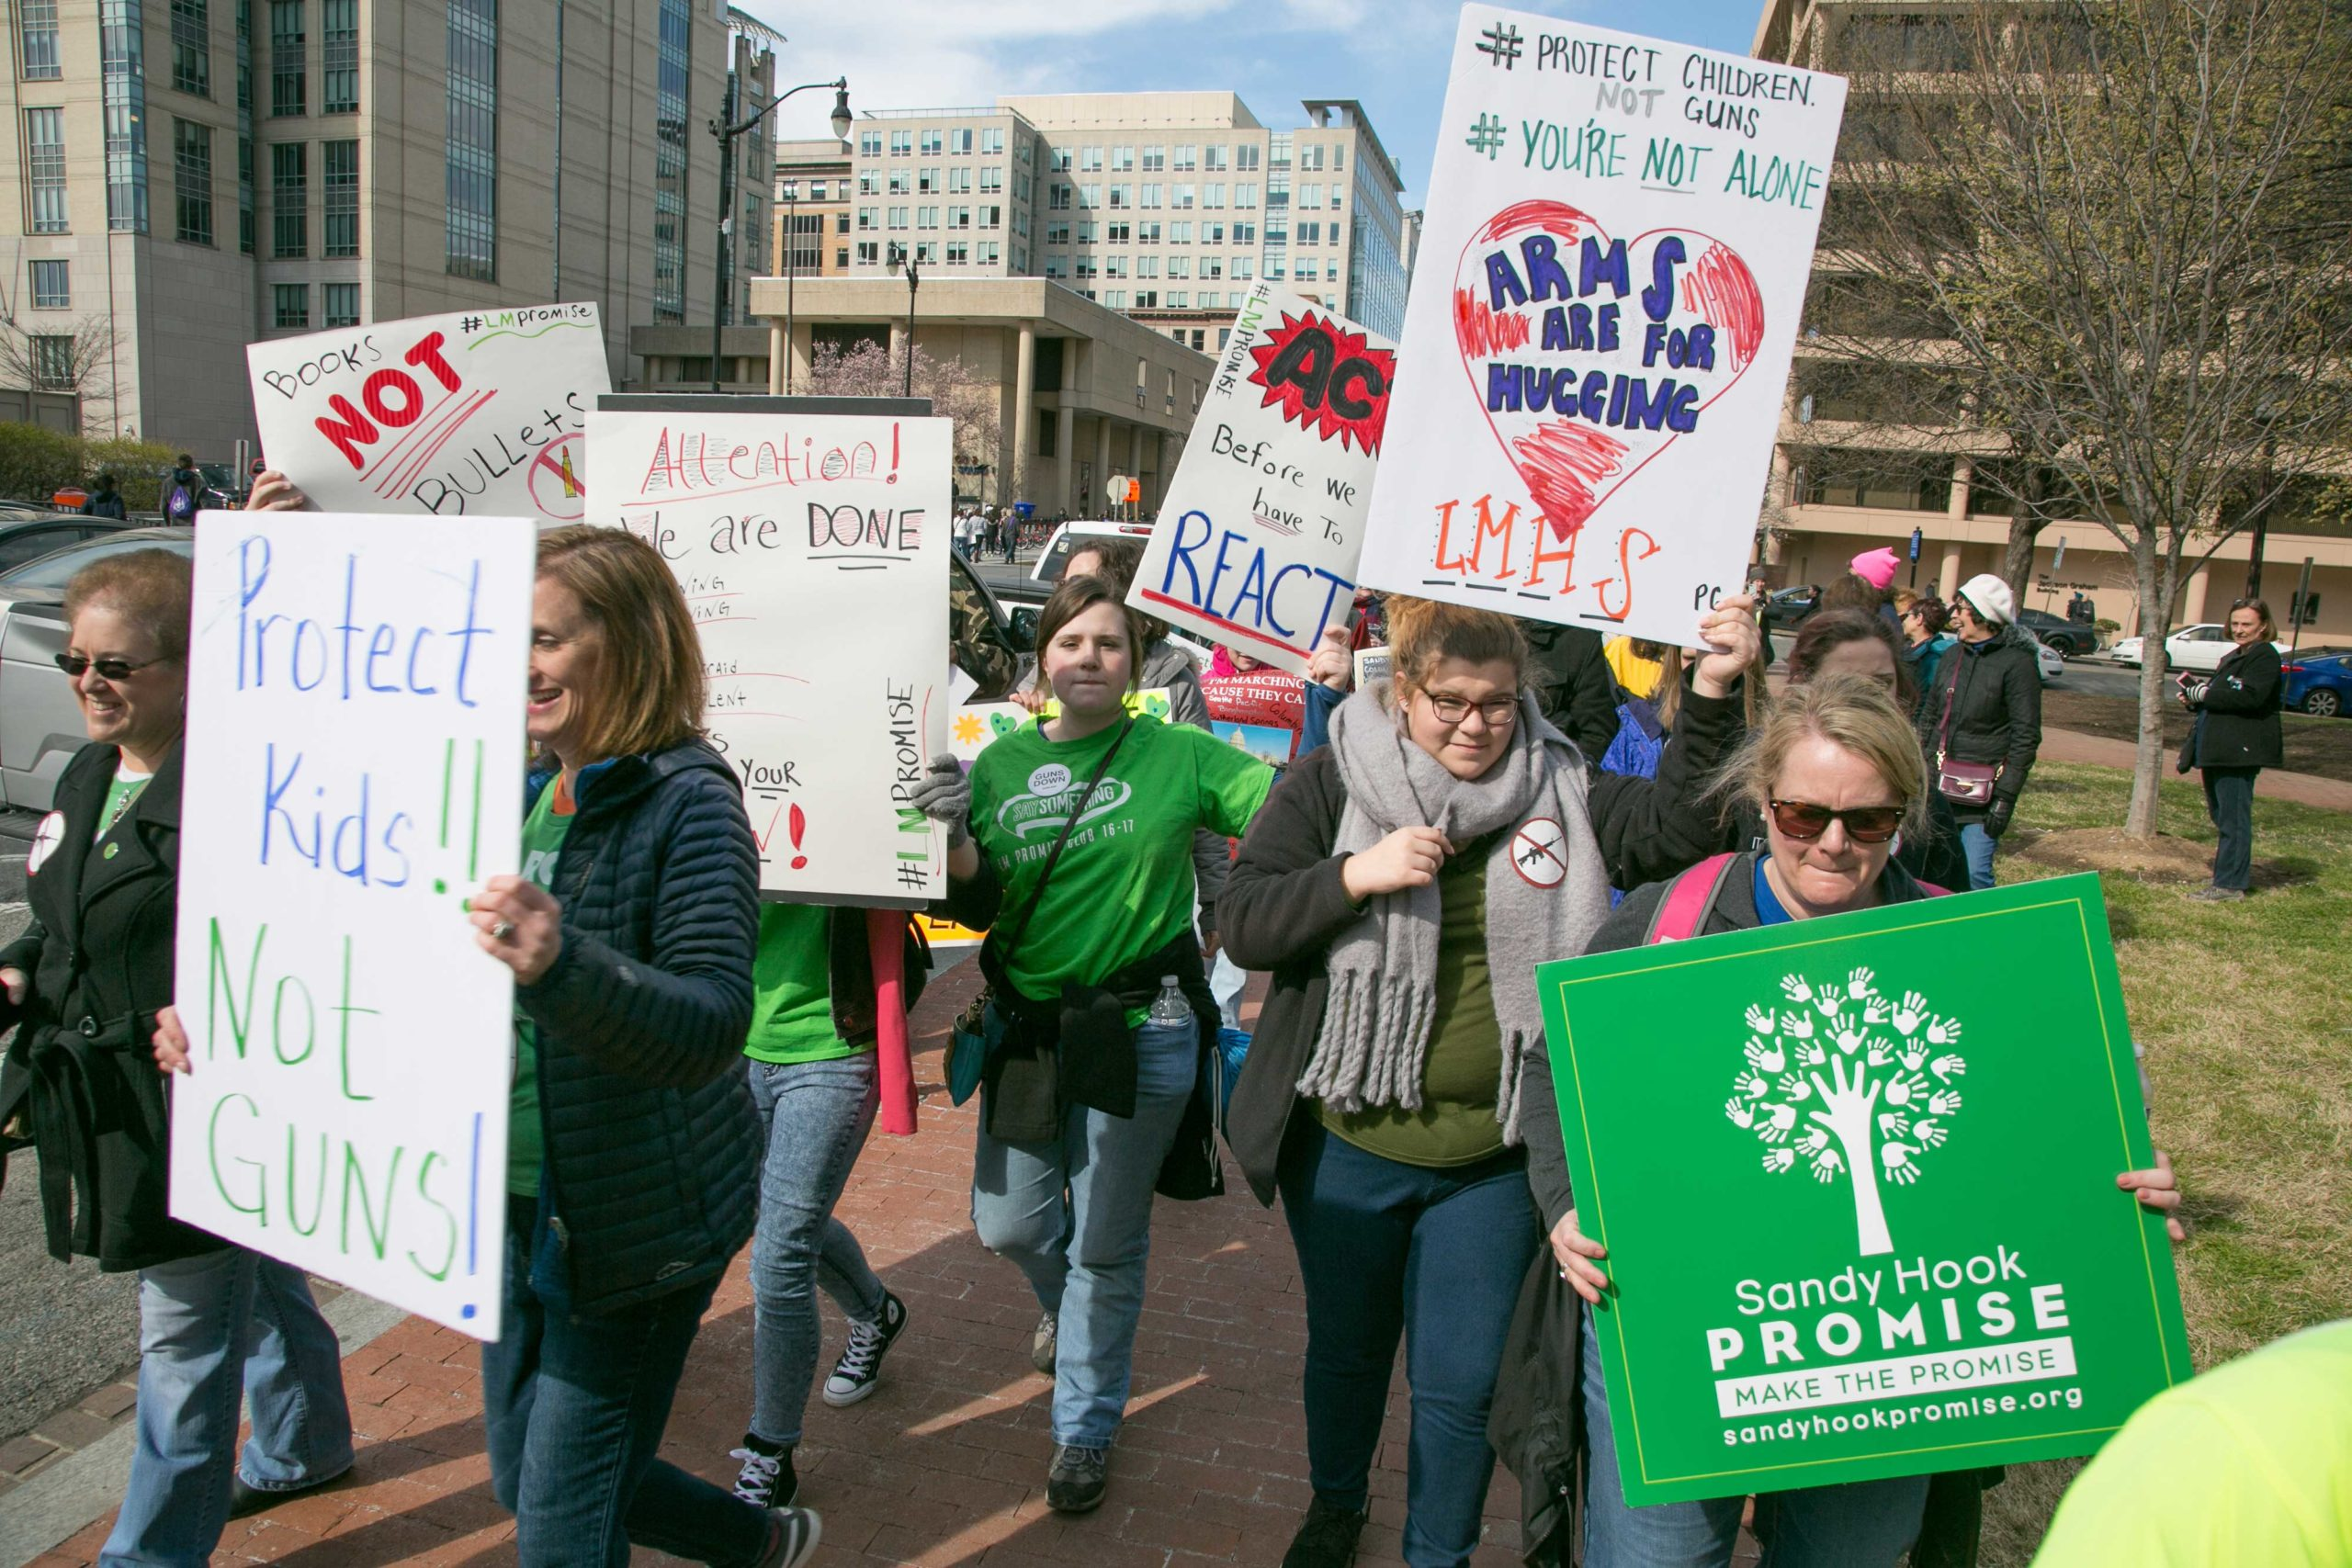 Volunteers and supporters with Sandy Hook Promise participate in the 2018 Marach For Our Lives in Washington, D.C.